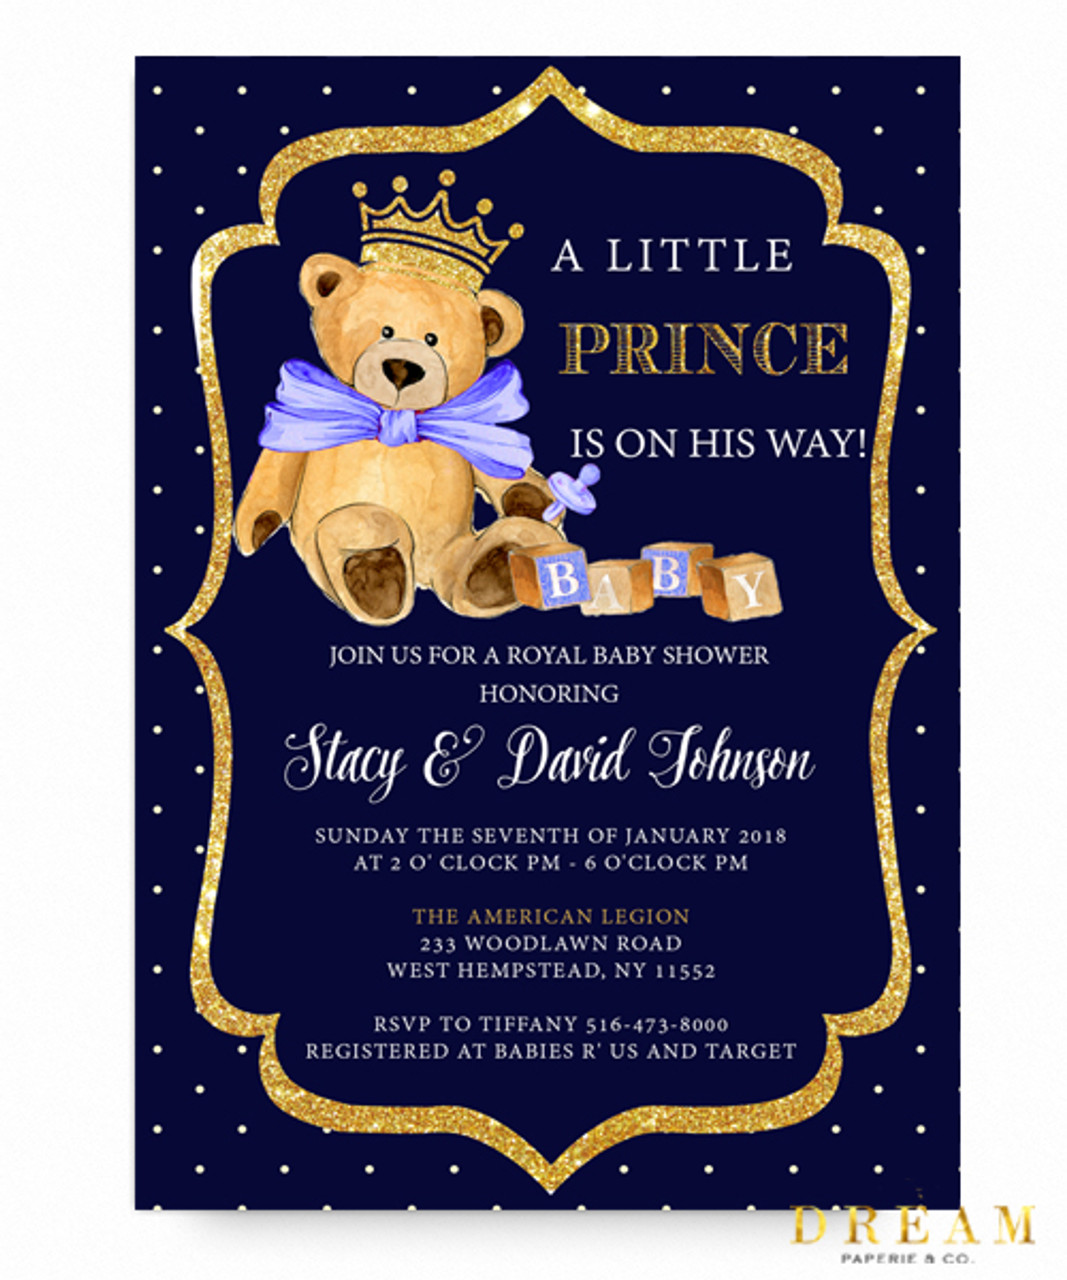 Captivating Little Prince, Baby Shower Invitation, Royal Baby Shower Invitation,royal  Blue, Glitter ...